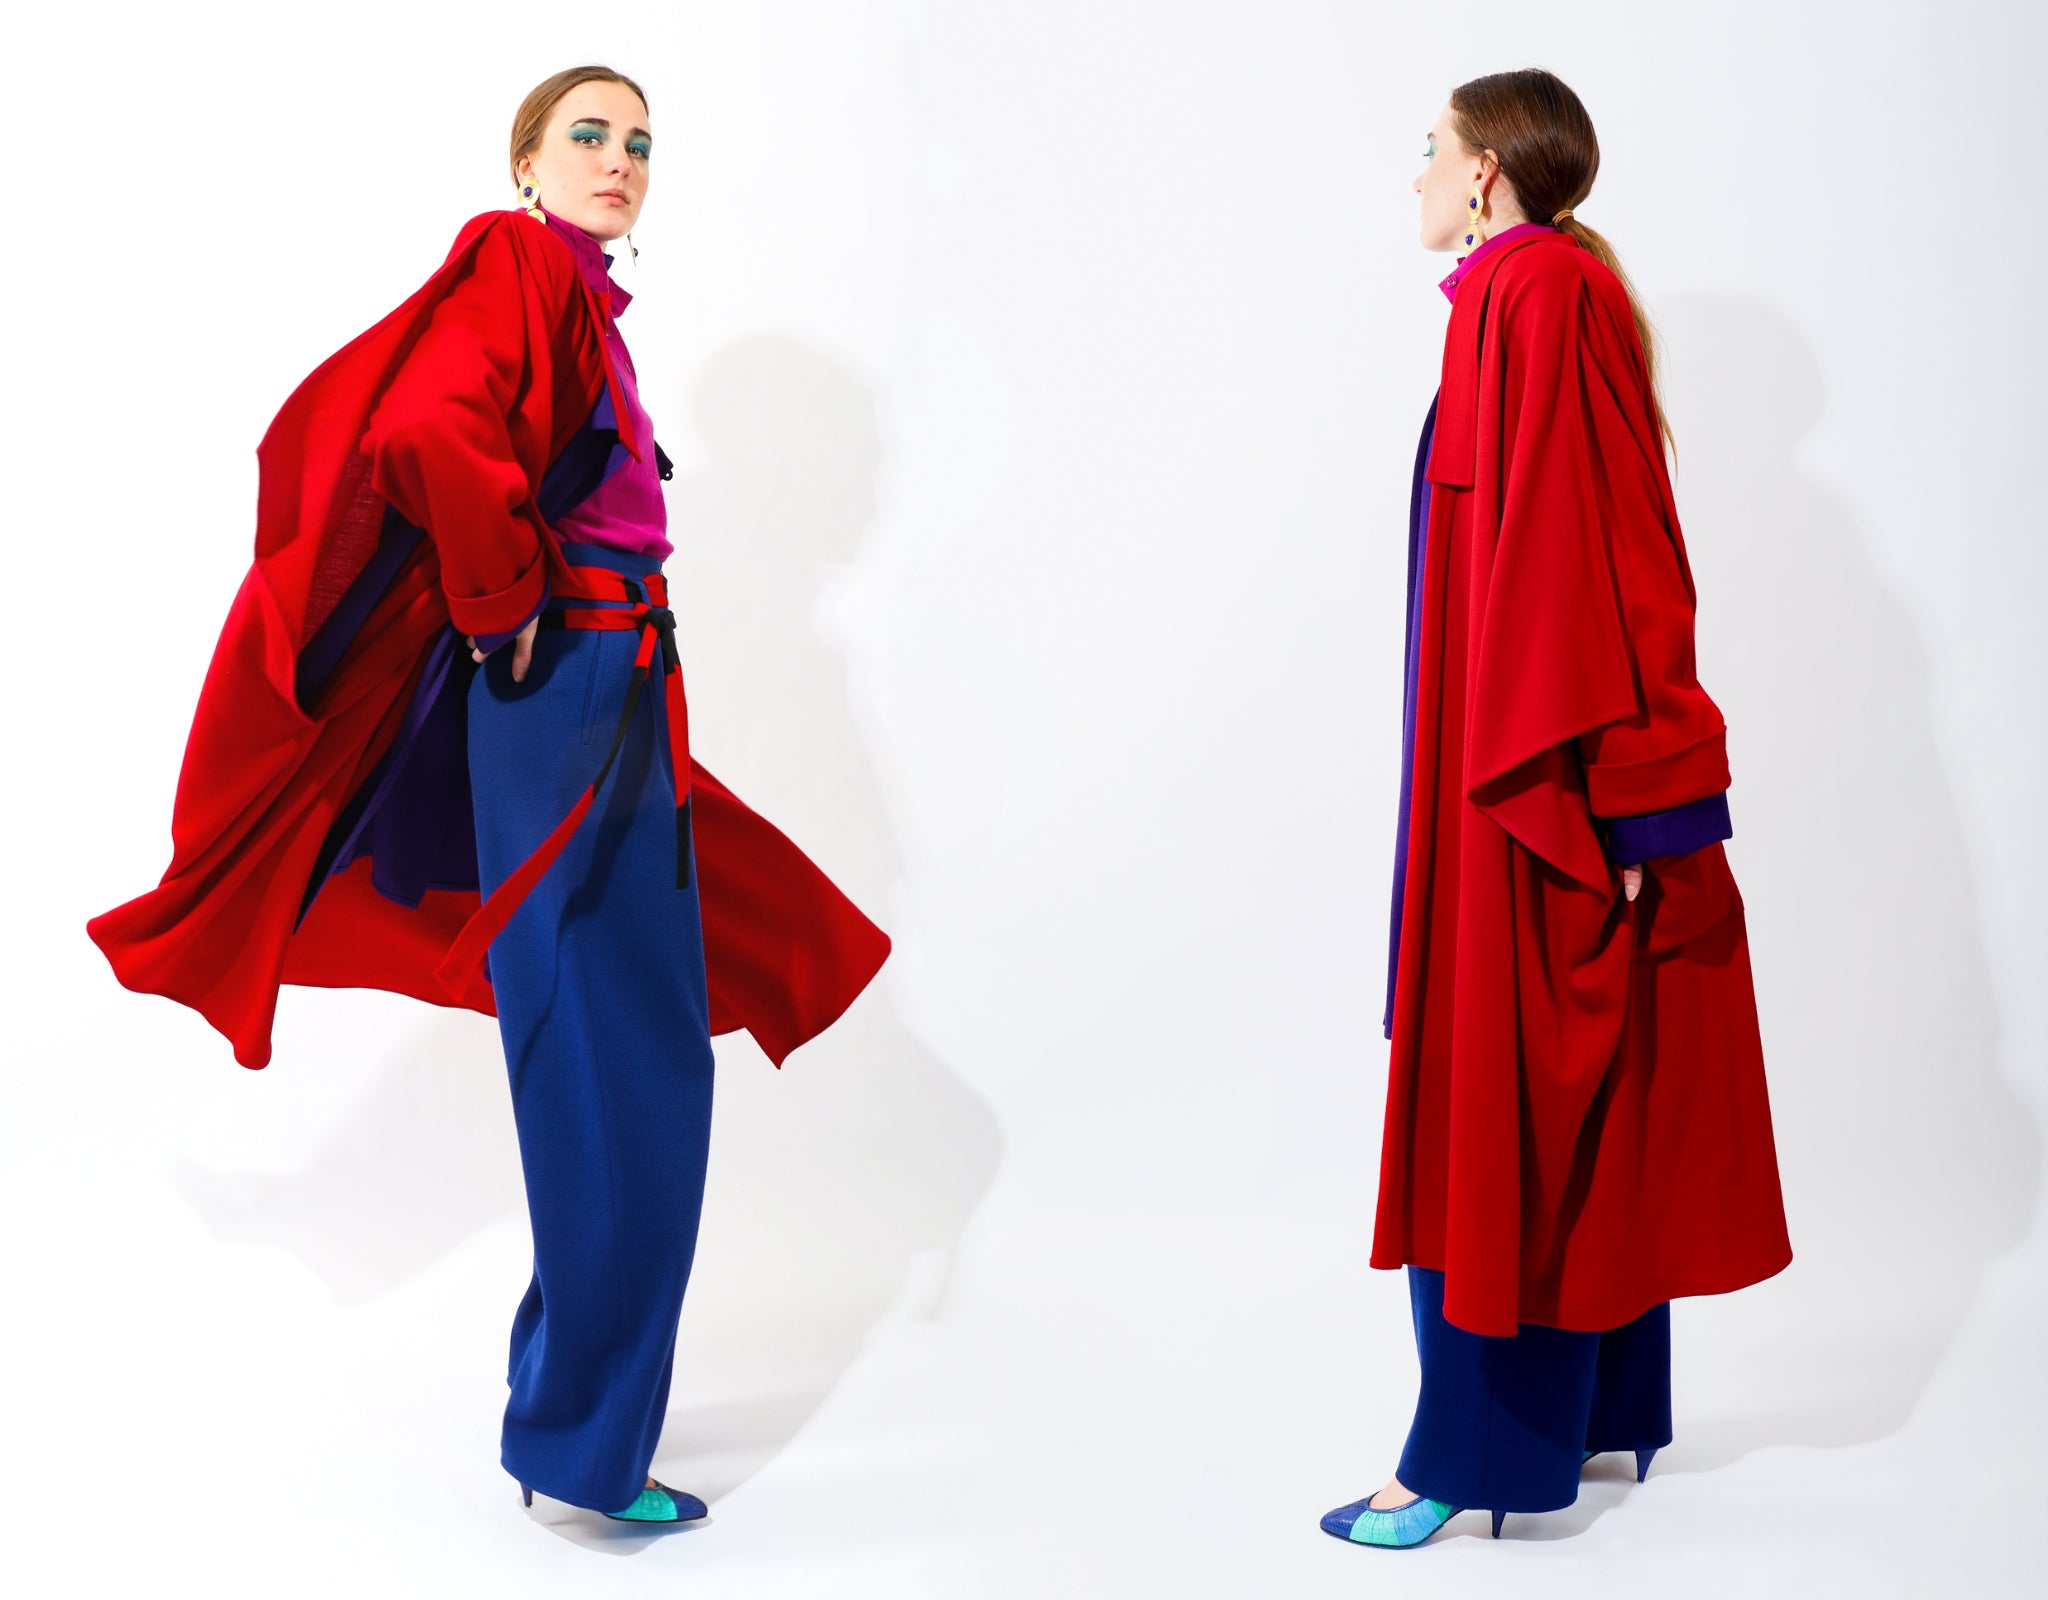 Girl in layers of Sonia Rykiel with Red Coat, Purple Coat, Hot Pink Button and Blue Pant